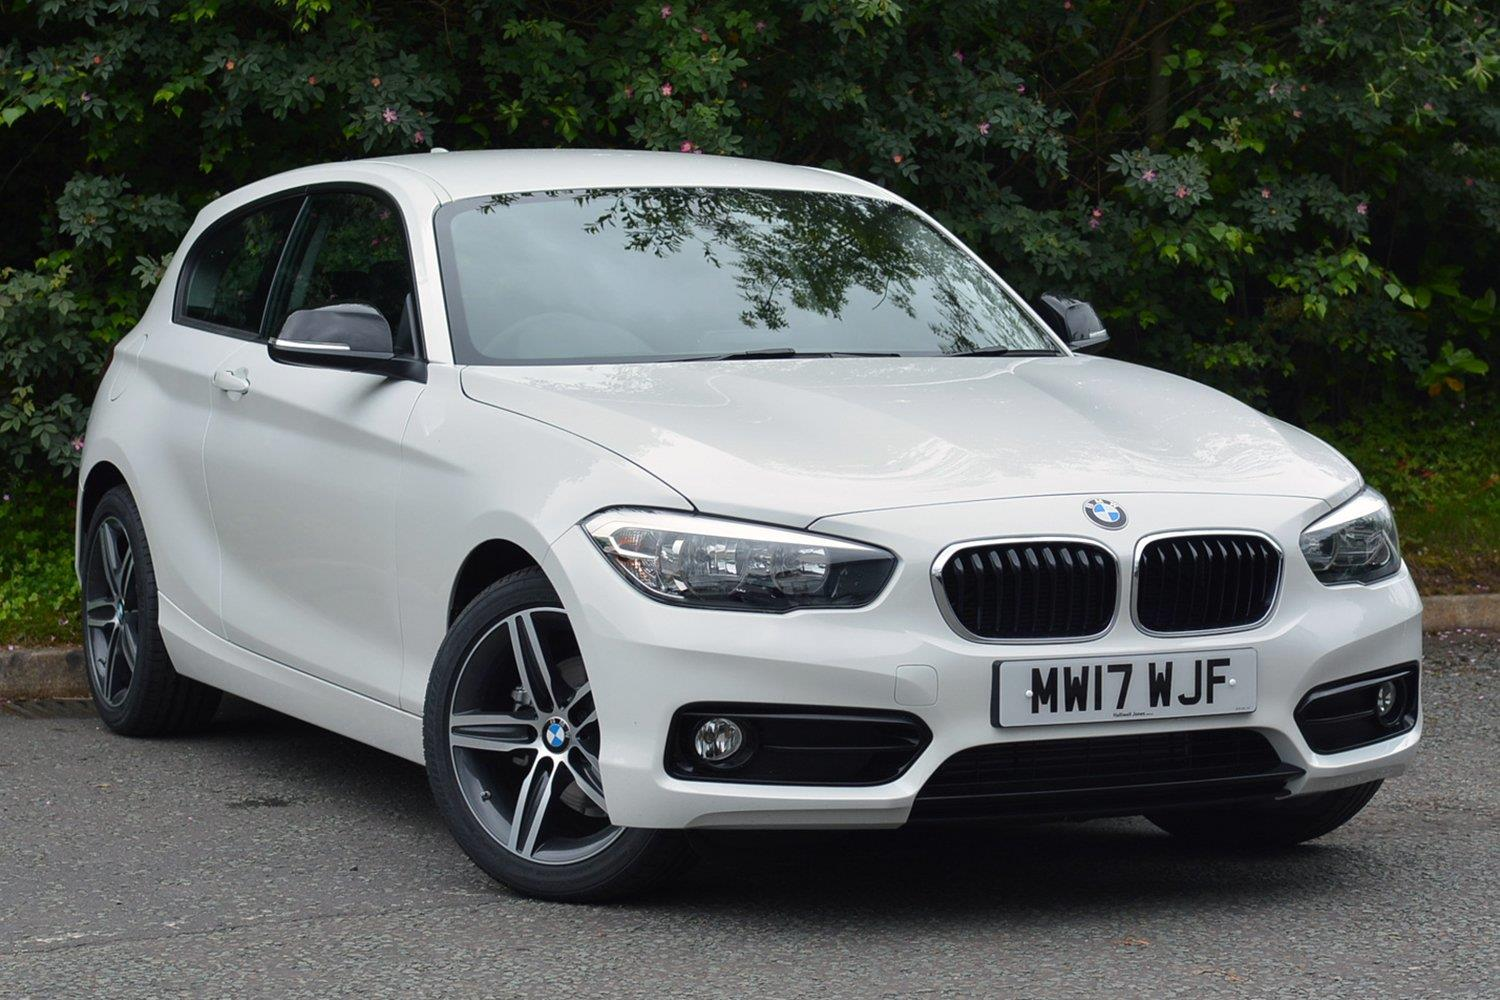 BMW 1 Series 3-door Sports Hatch MW17WJF - Image 6